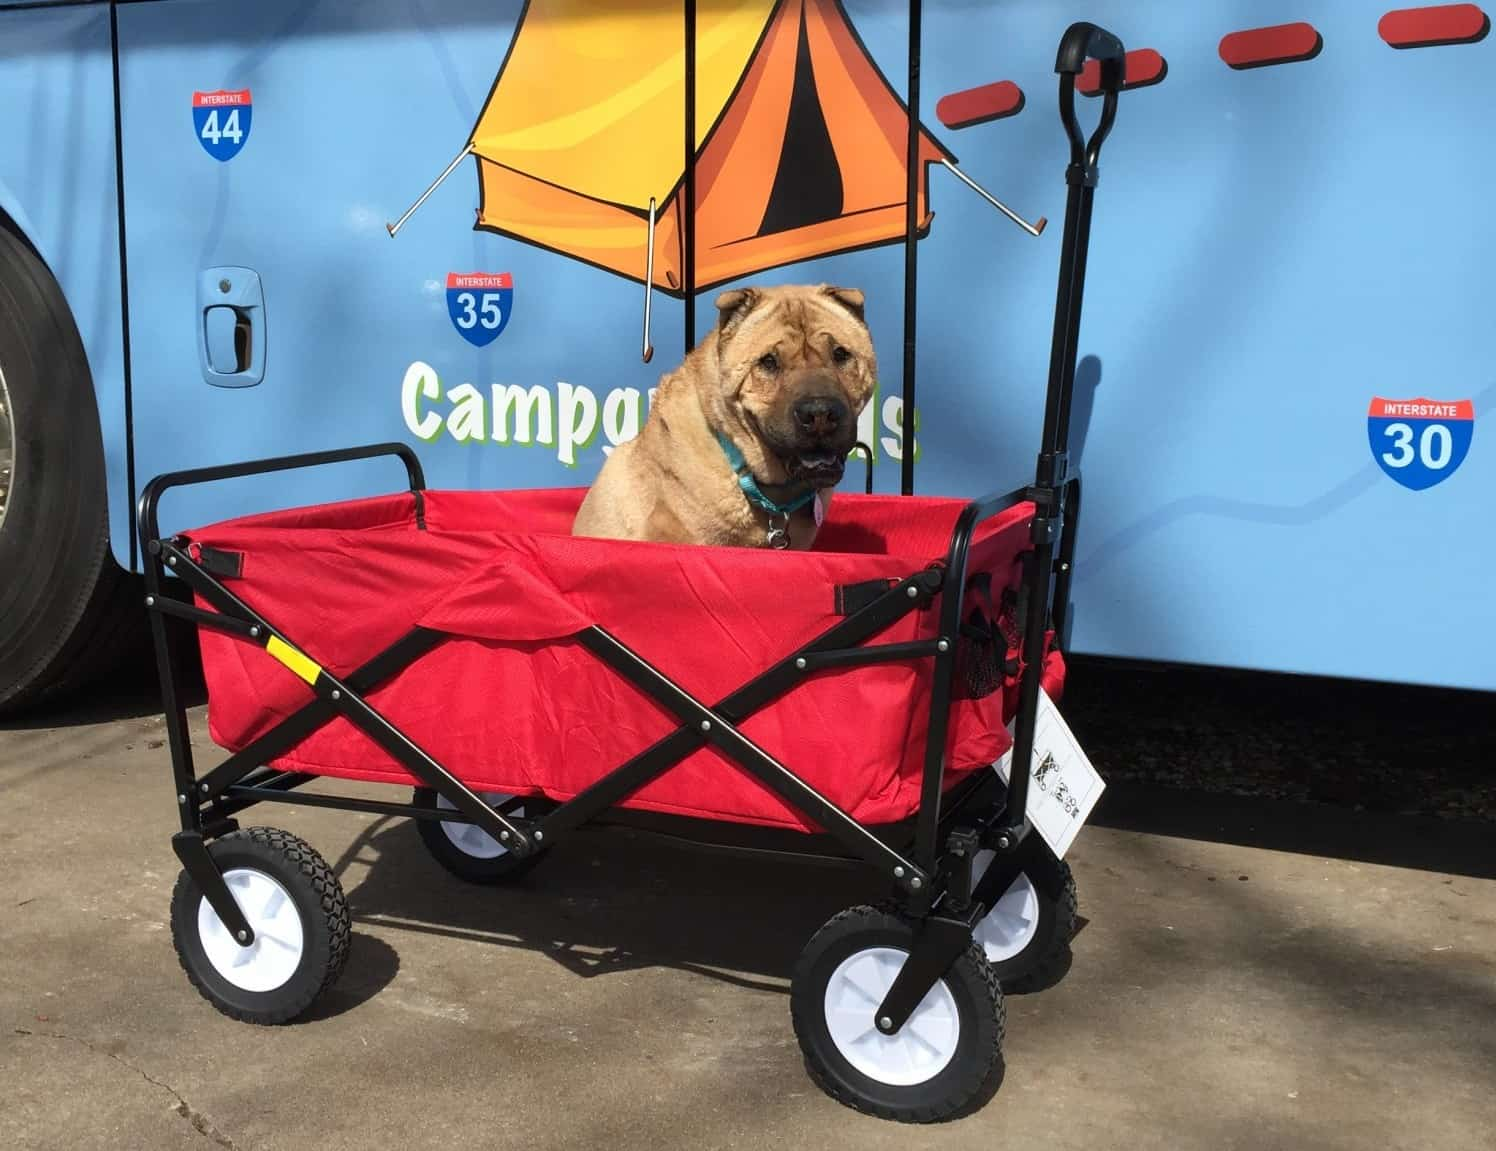 Dog in collapsable wagon